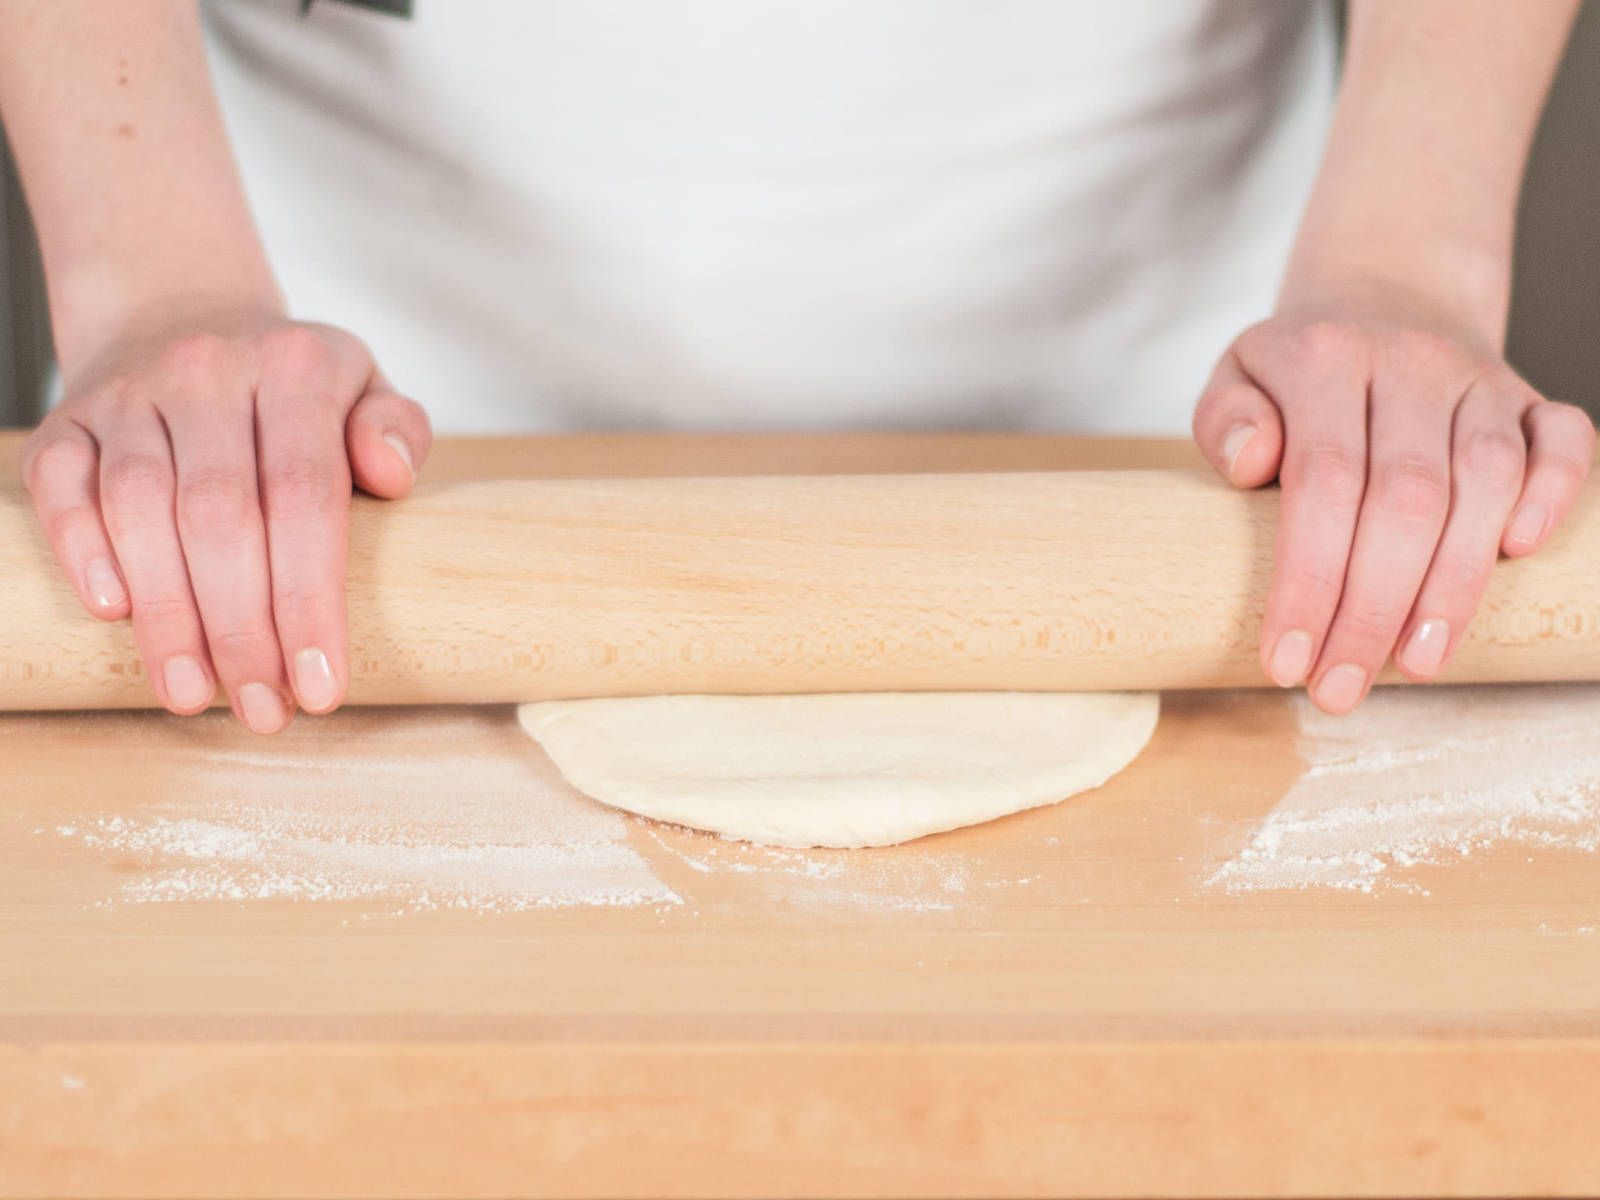 Preheat oven to 220°C/420°F. Next, on a work surface sprinkled with flour, roll out pizza dough until flat.